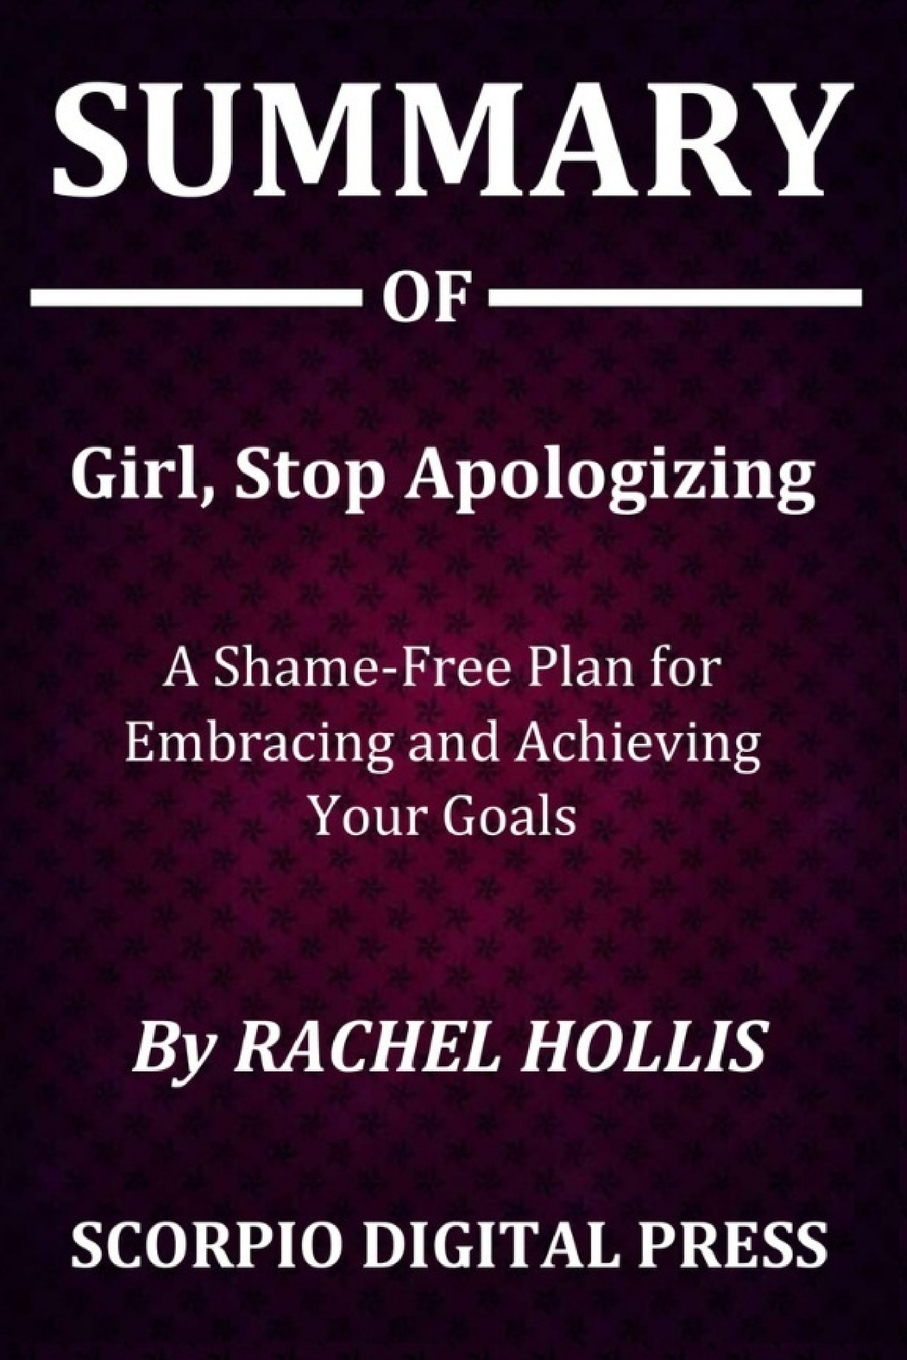 Stop Apologizing-A SHAME-FREE PLAN FOR EMBRACING AND ACHIEVING YOUR GOALS By Rachel Hollis A Daily Office Journal For Girl